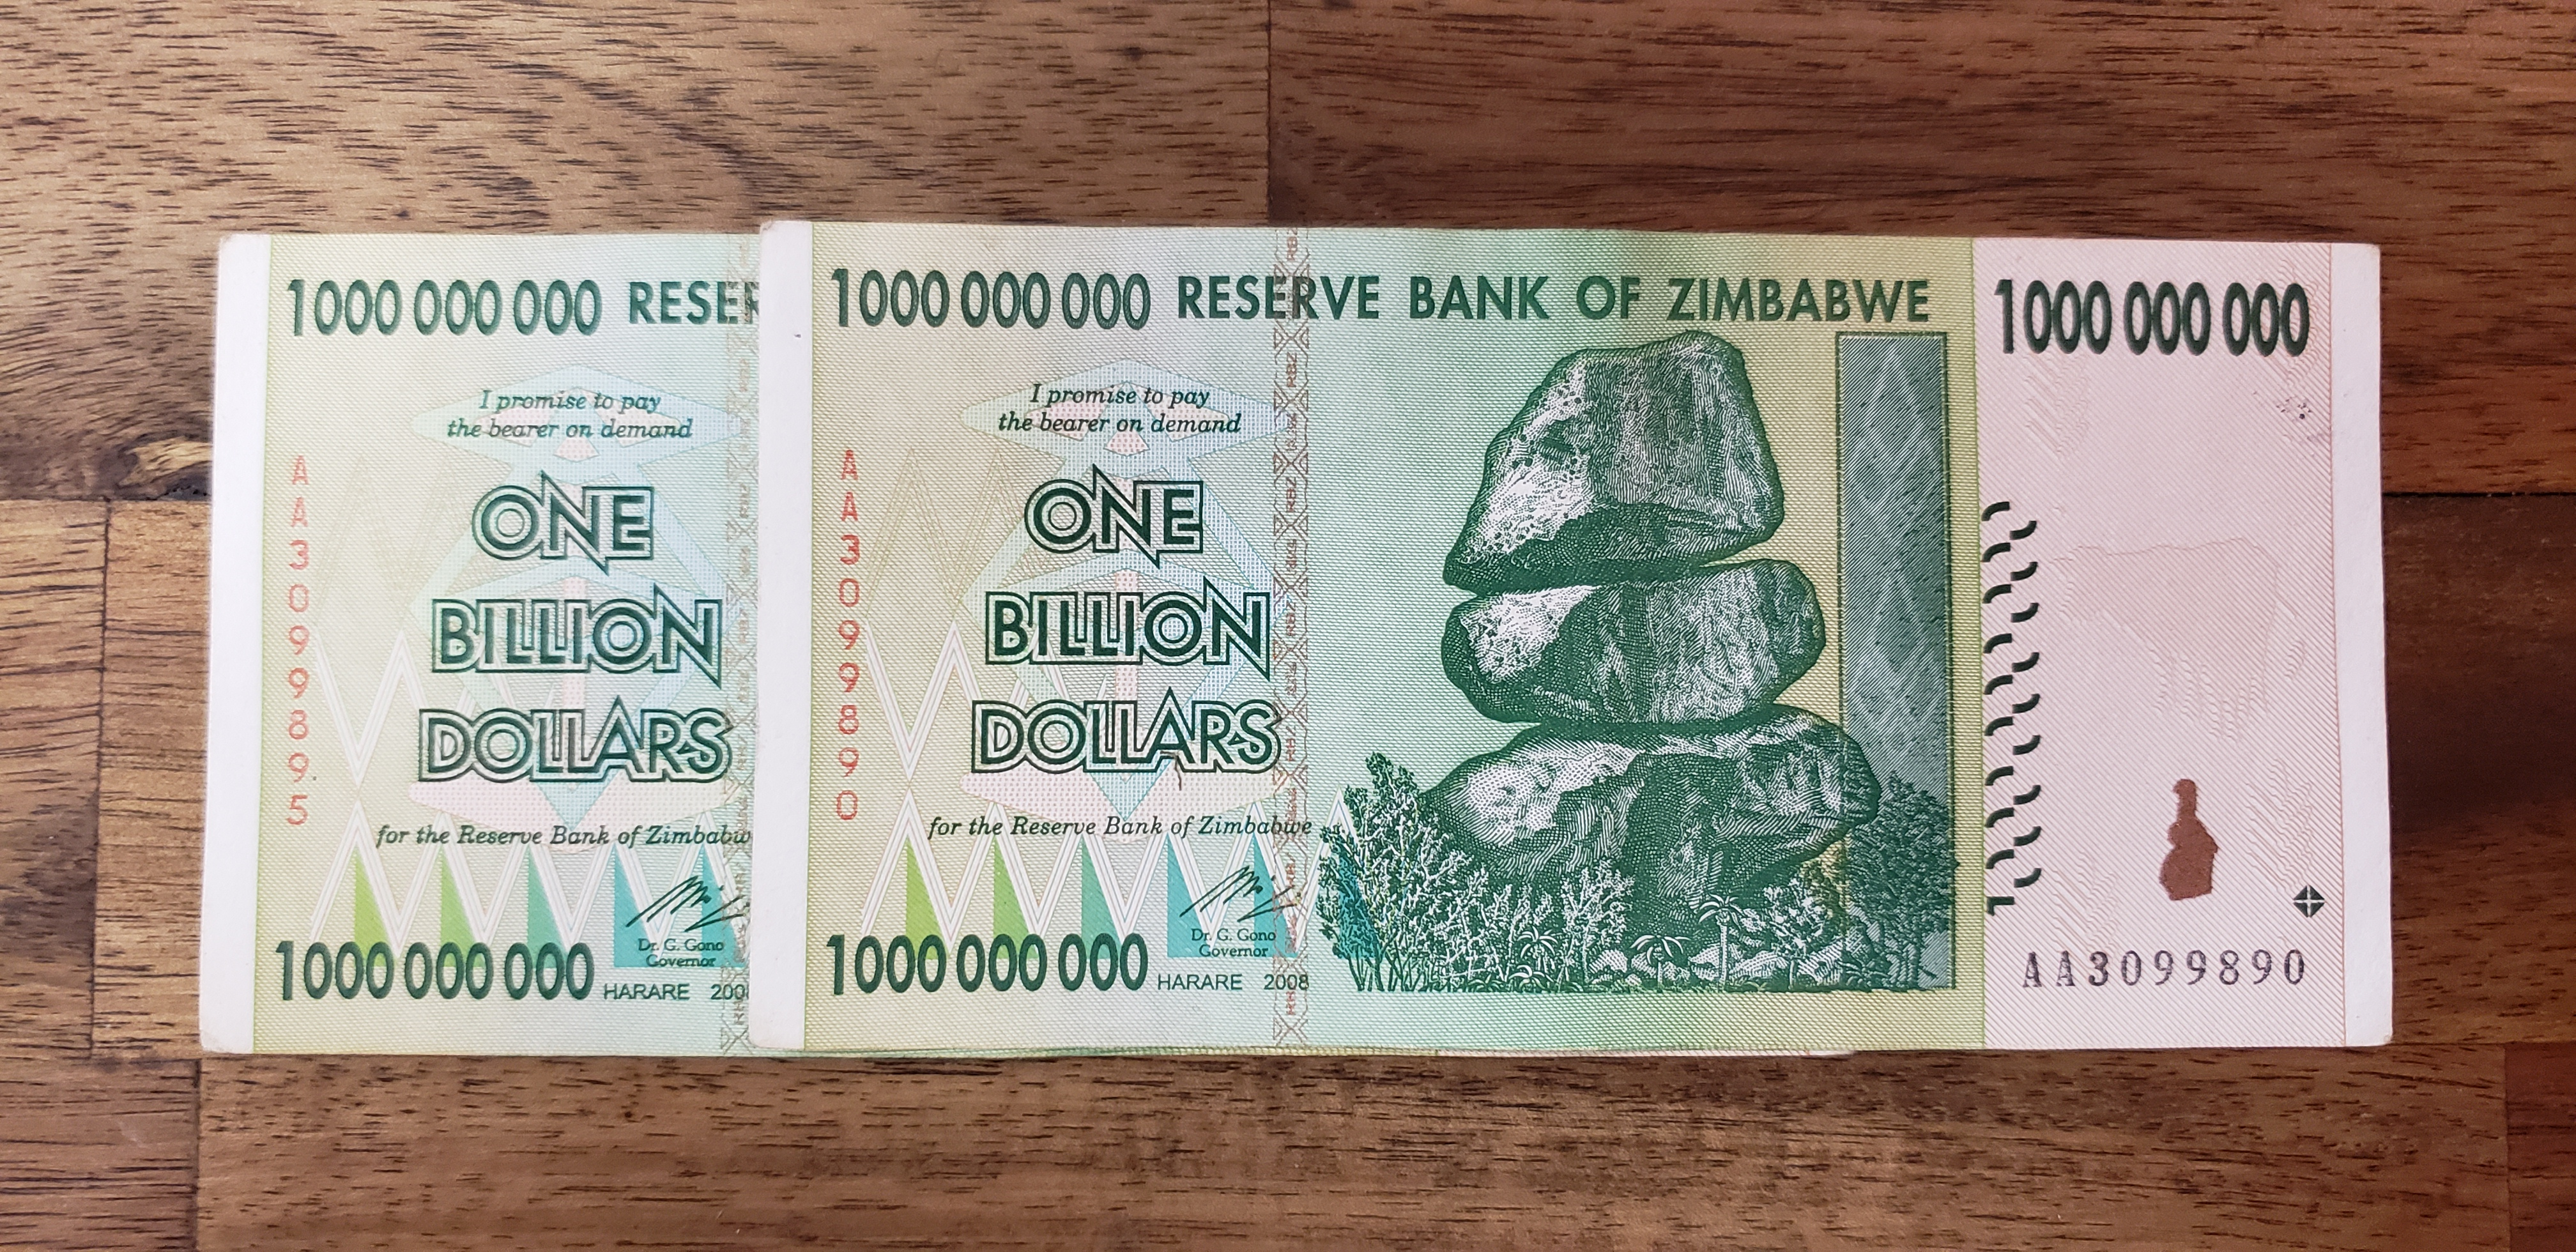 Two Billion - 2 Bills in Sequence